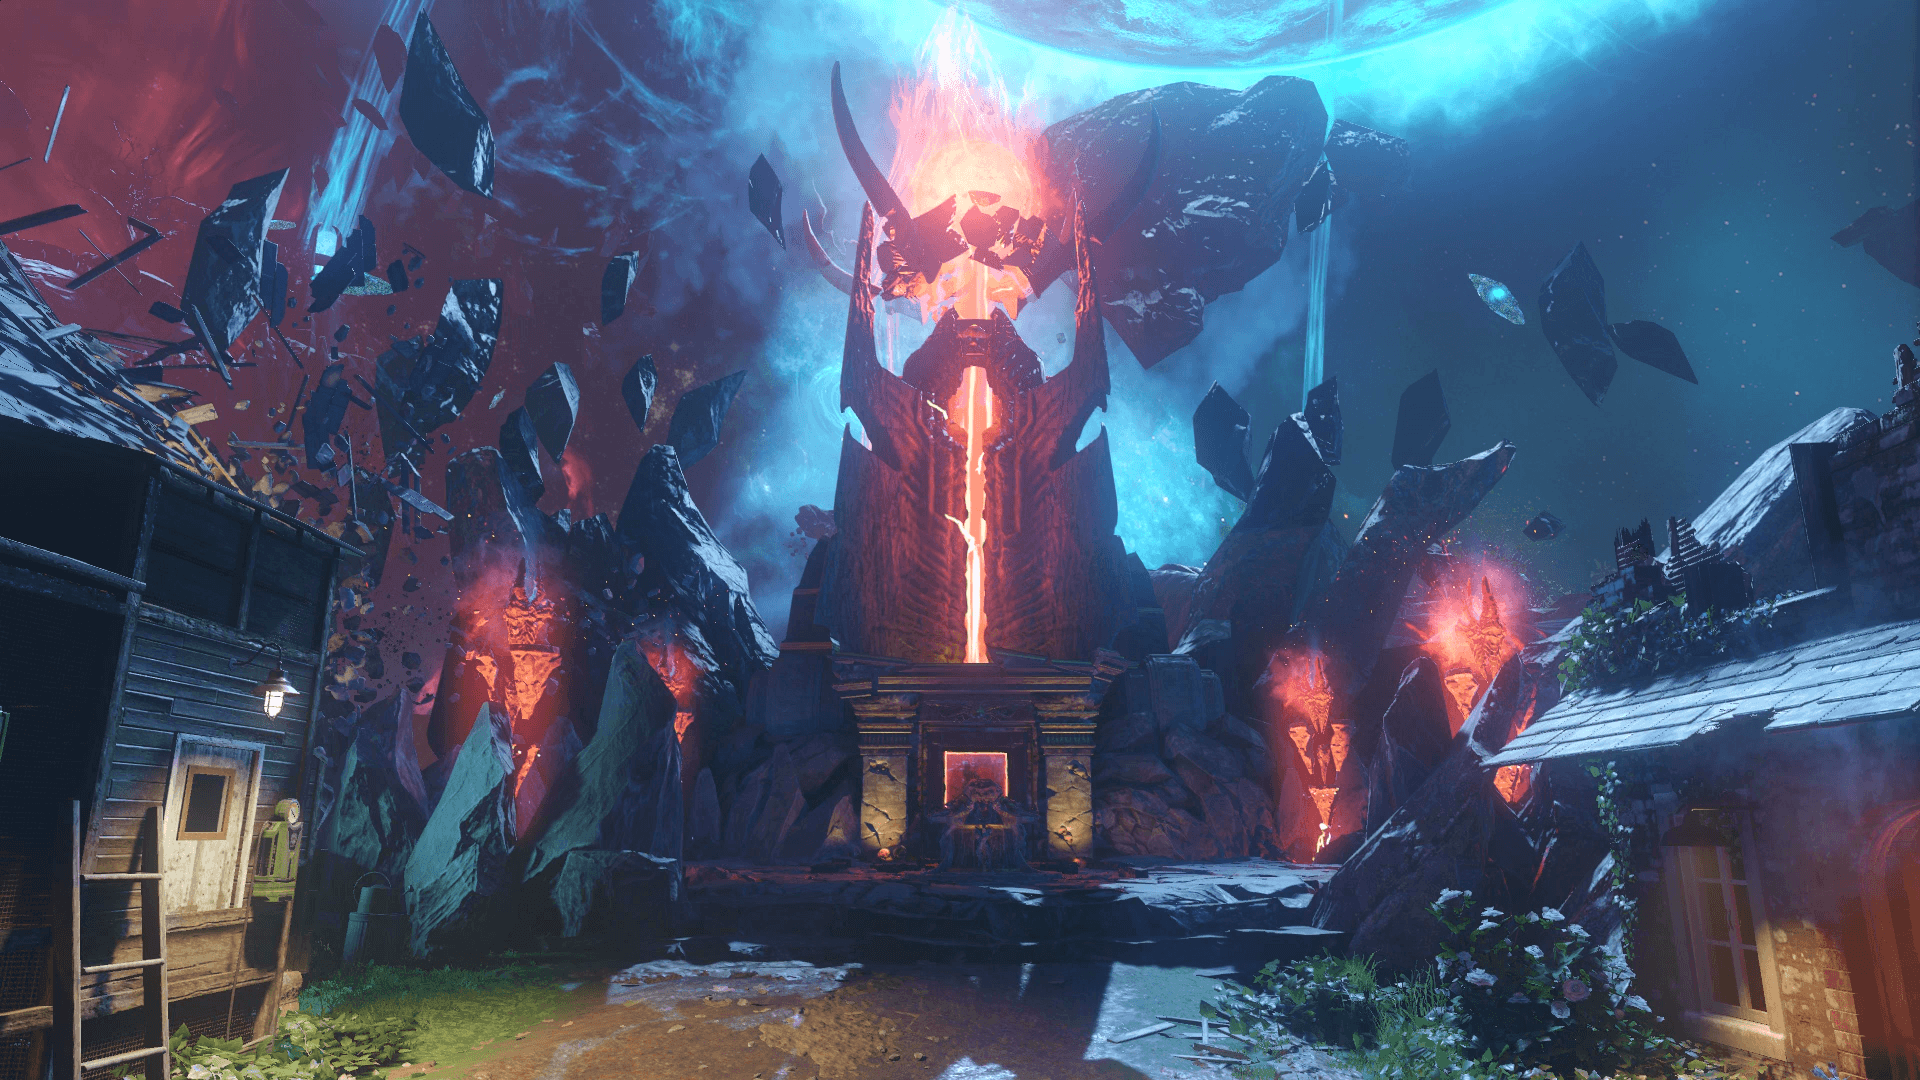 Black Ops 3 Zombies Wallpaper: Black Ops 3 Zombies Wallpapers